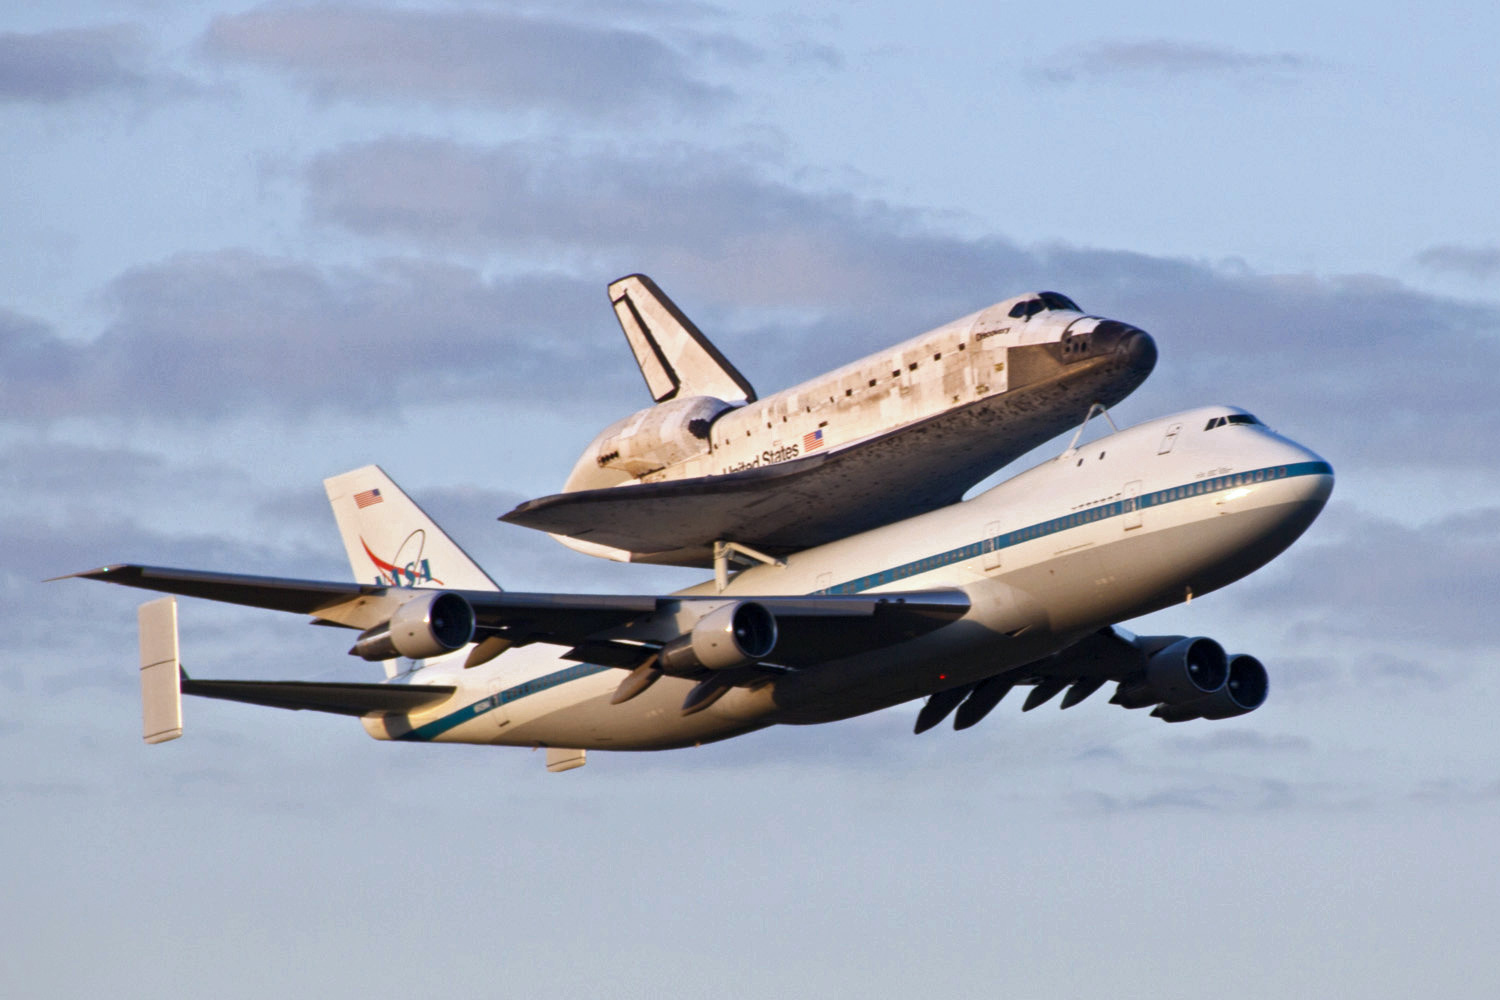 File:Shuttle Carrier Aircraft transporting Discovery ...